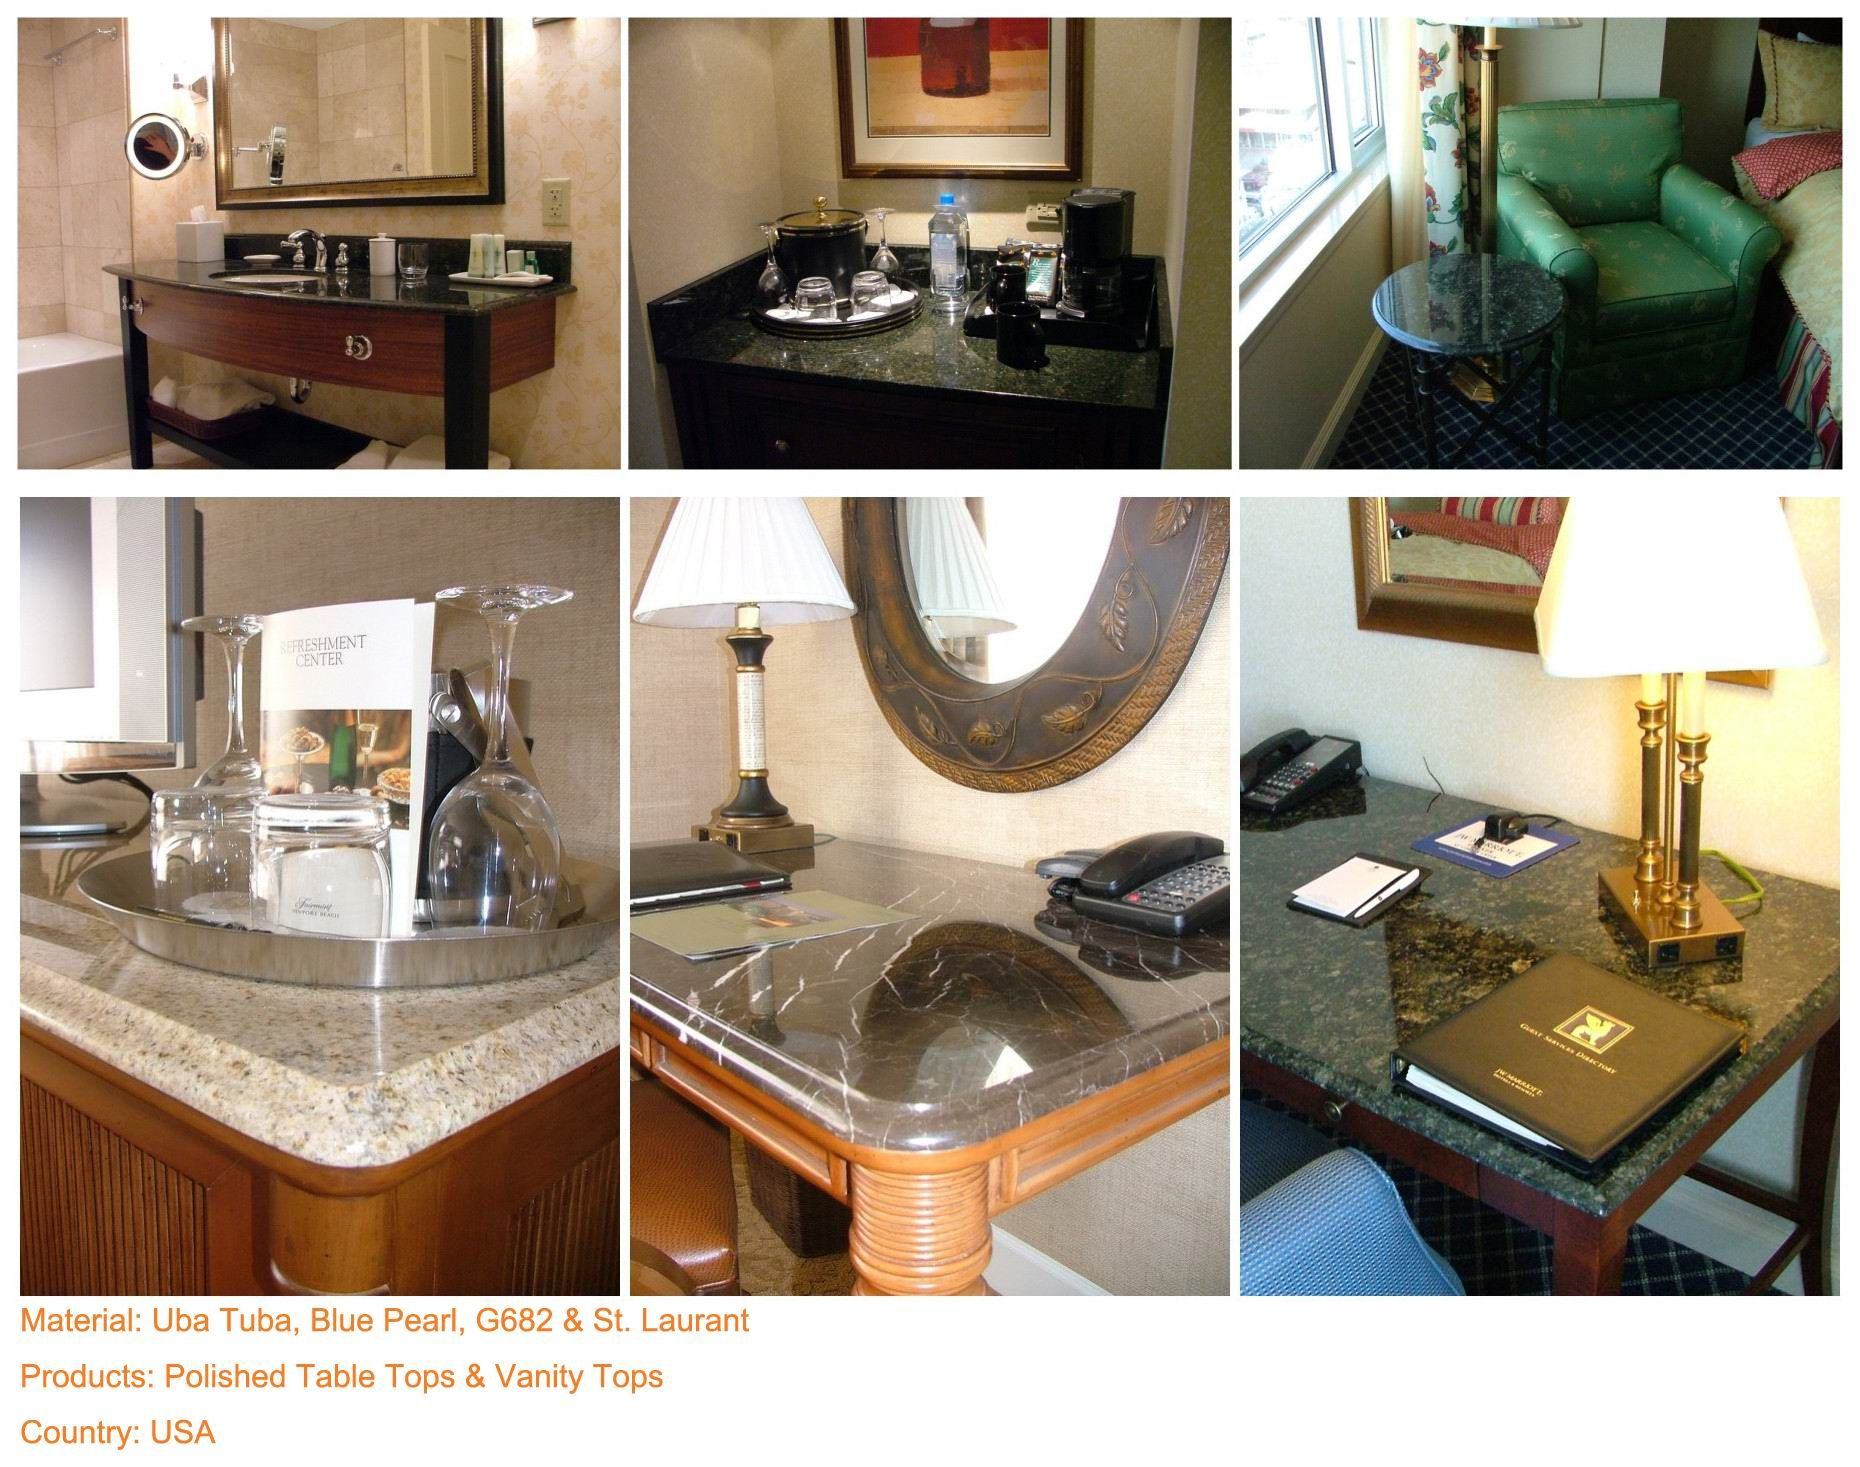 Project (1) Material: Uba Tuba, Blue Pearl, G682 & St. Laurant Products: Polished Table Tops & Vanity Tops Country: USA